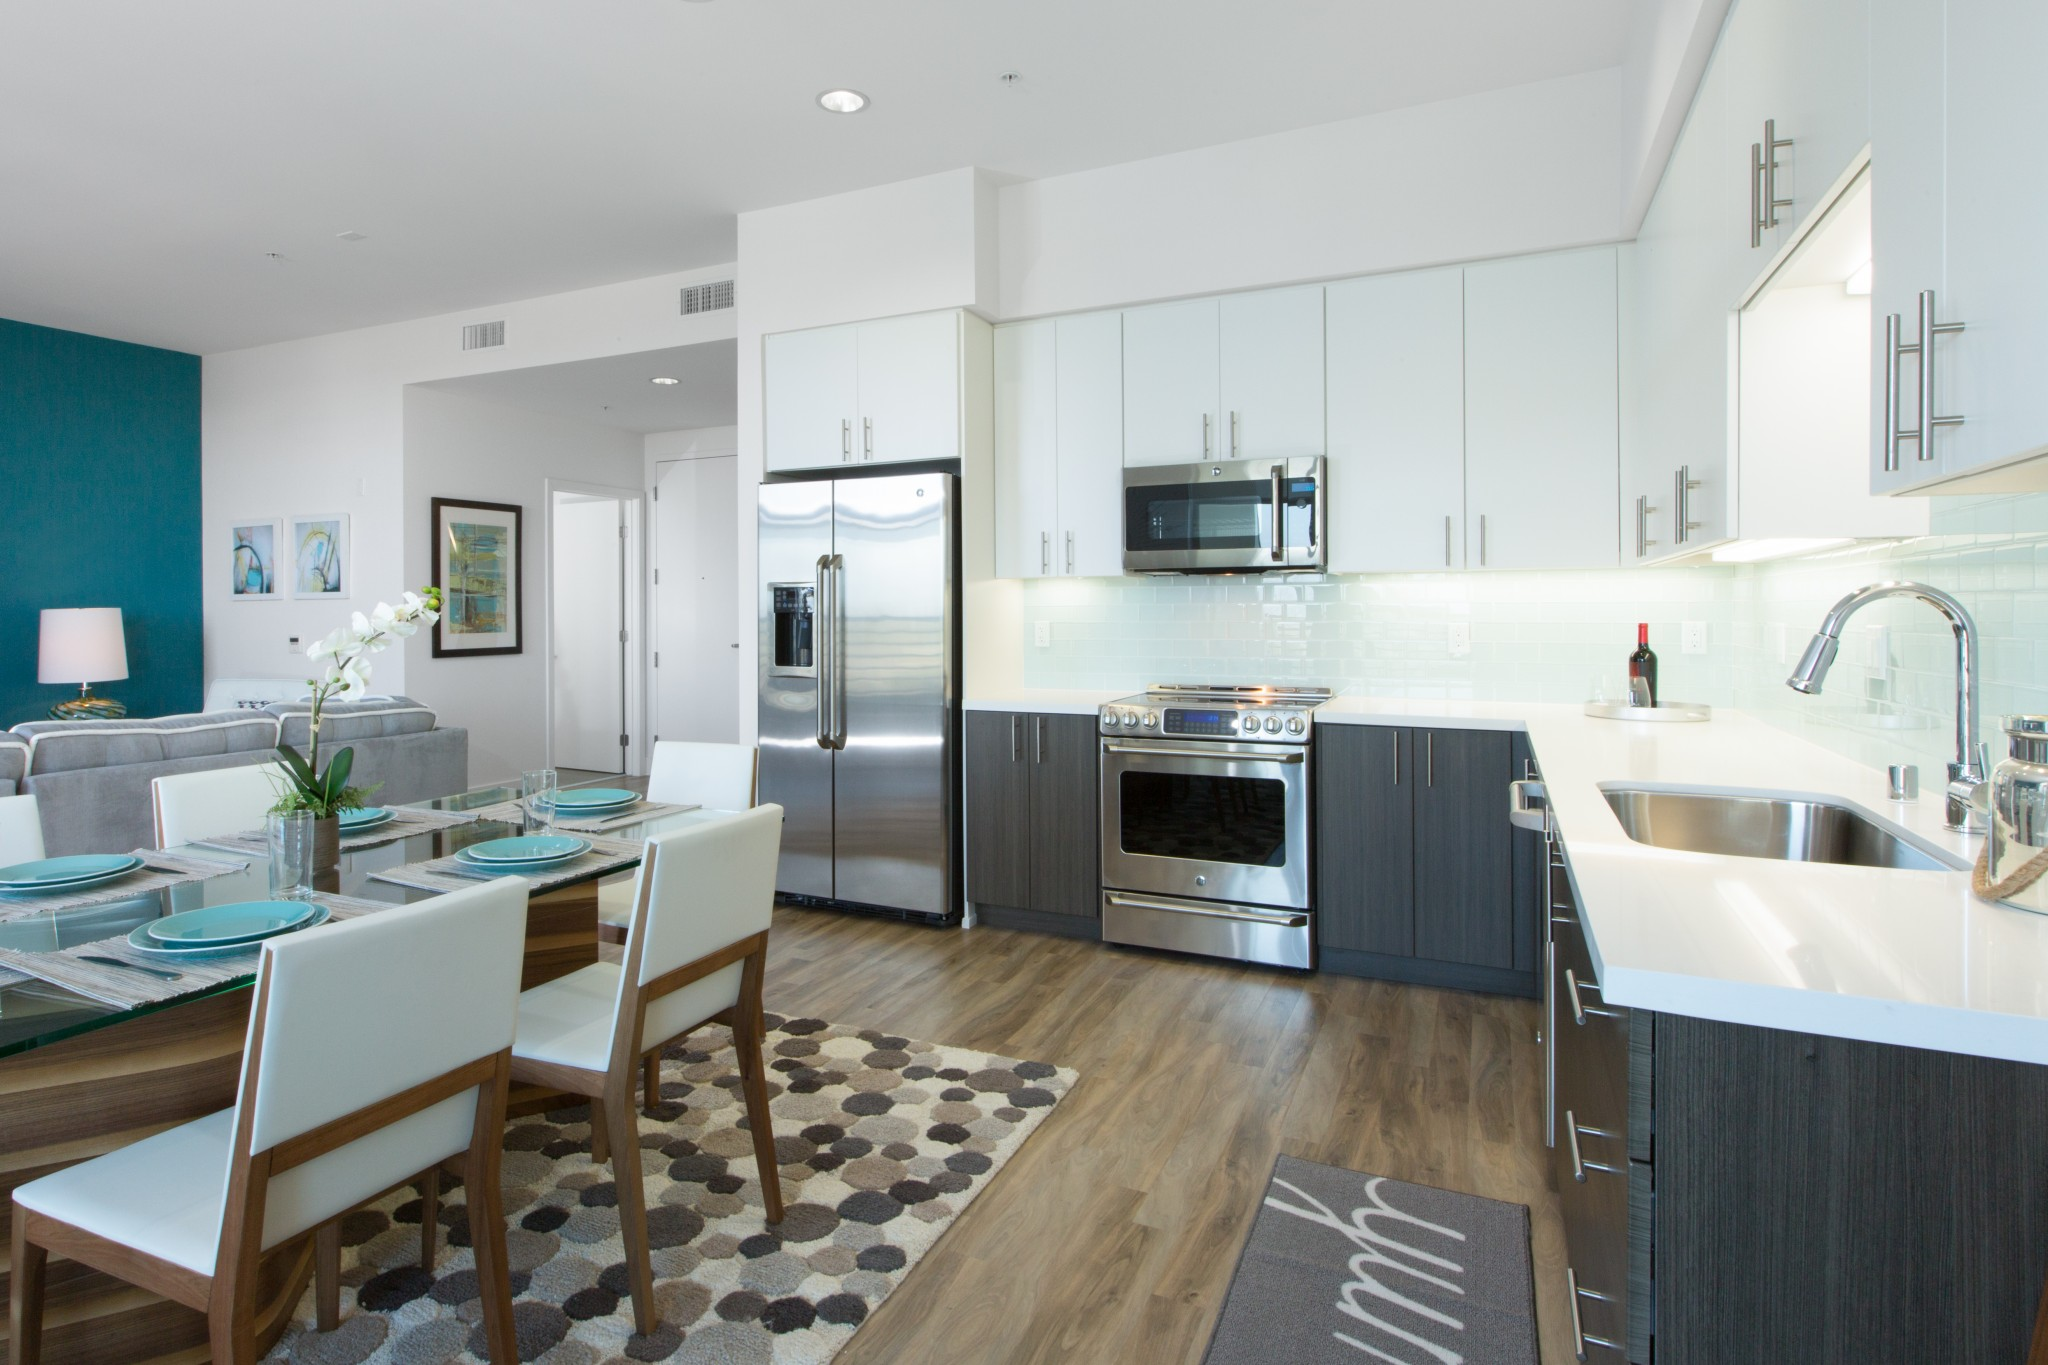 Modern kitchen with stainless steel appliances and view of the living room and a dining table to the right.